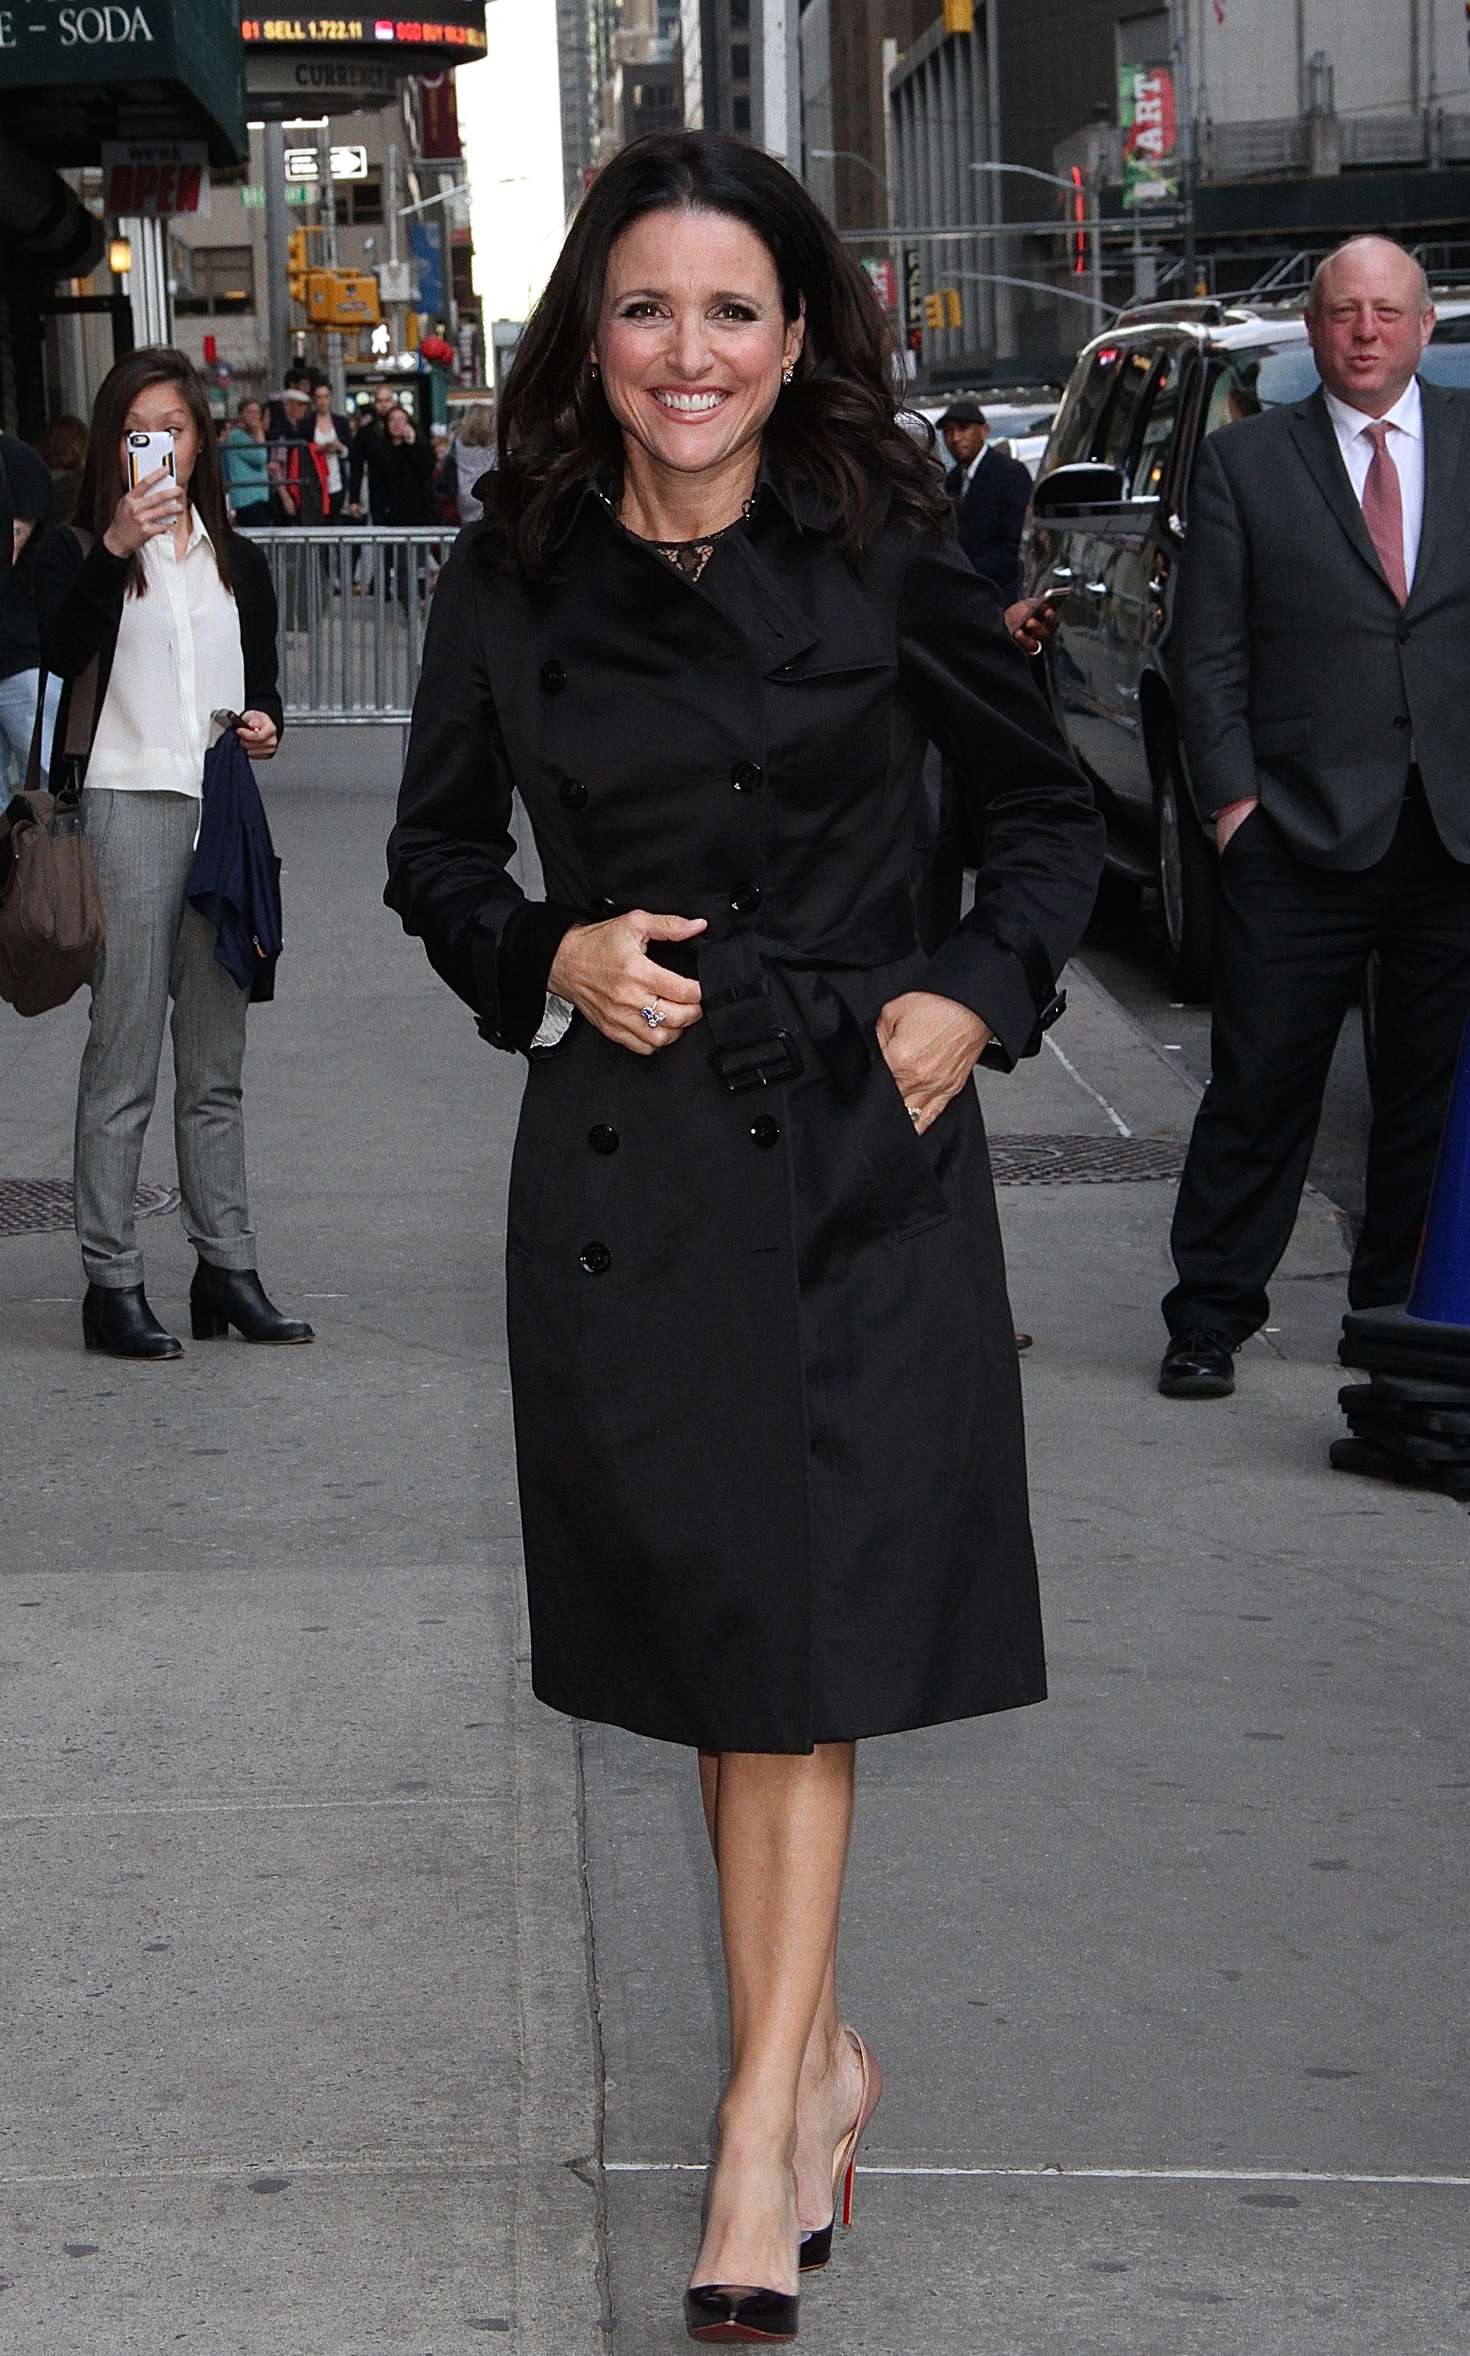 Julia Louis-Dreyfus Arrives at The Late Show with Stephen Colbert in New York